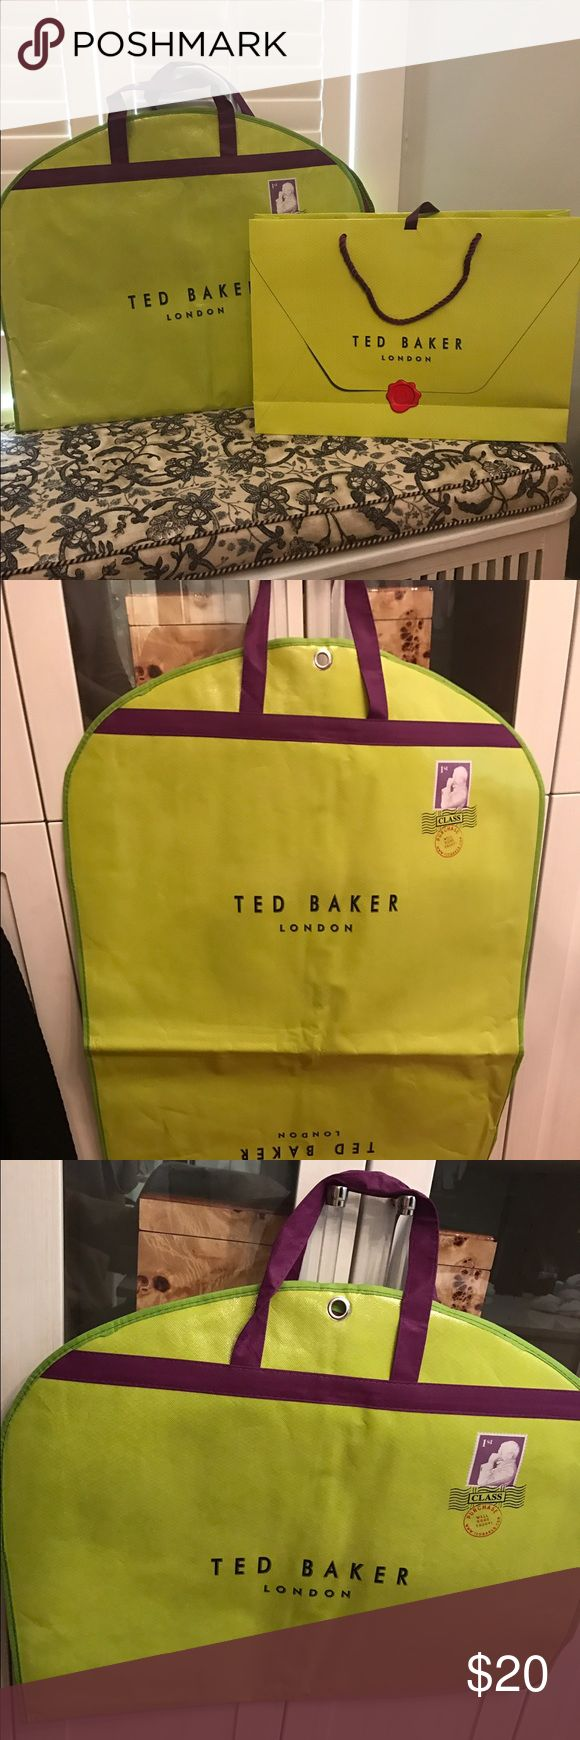 Ted Baker garment/dress bag & 18x13 shopping bag. Dress/suit/garment bag 37 inches long and shopping bag is 18x13 inches. Price is for 1 of each item.       See picture 4 for a great idea to use designer shopping bags for dressing room art. This listing does not include the framed pieces! Other